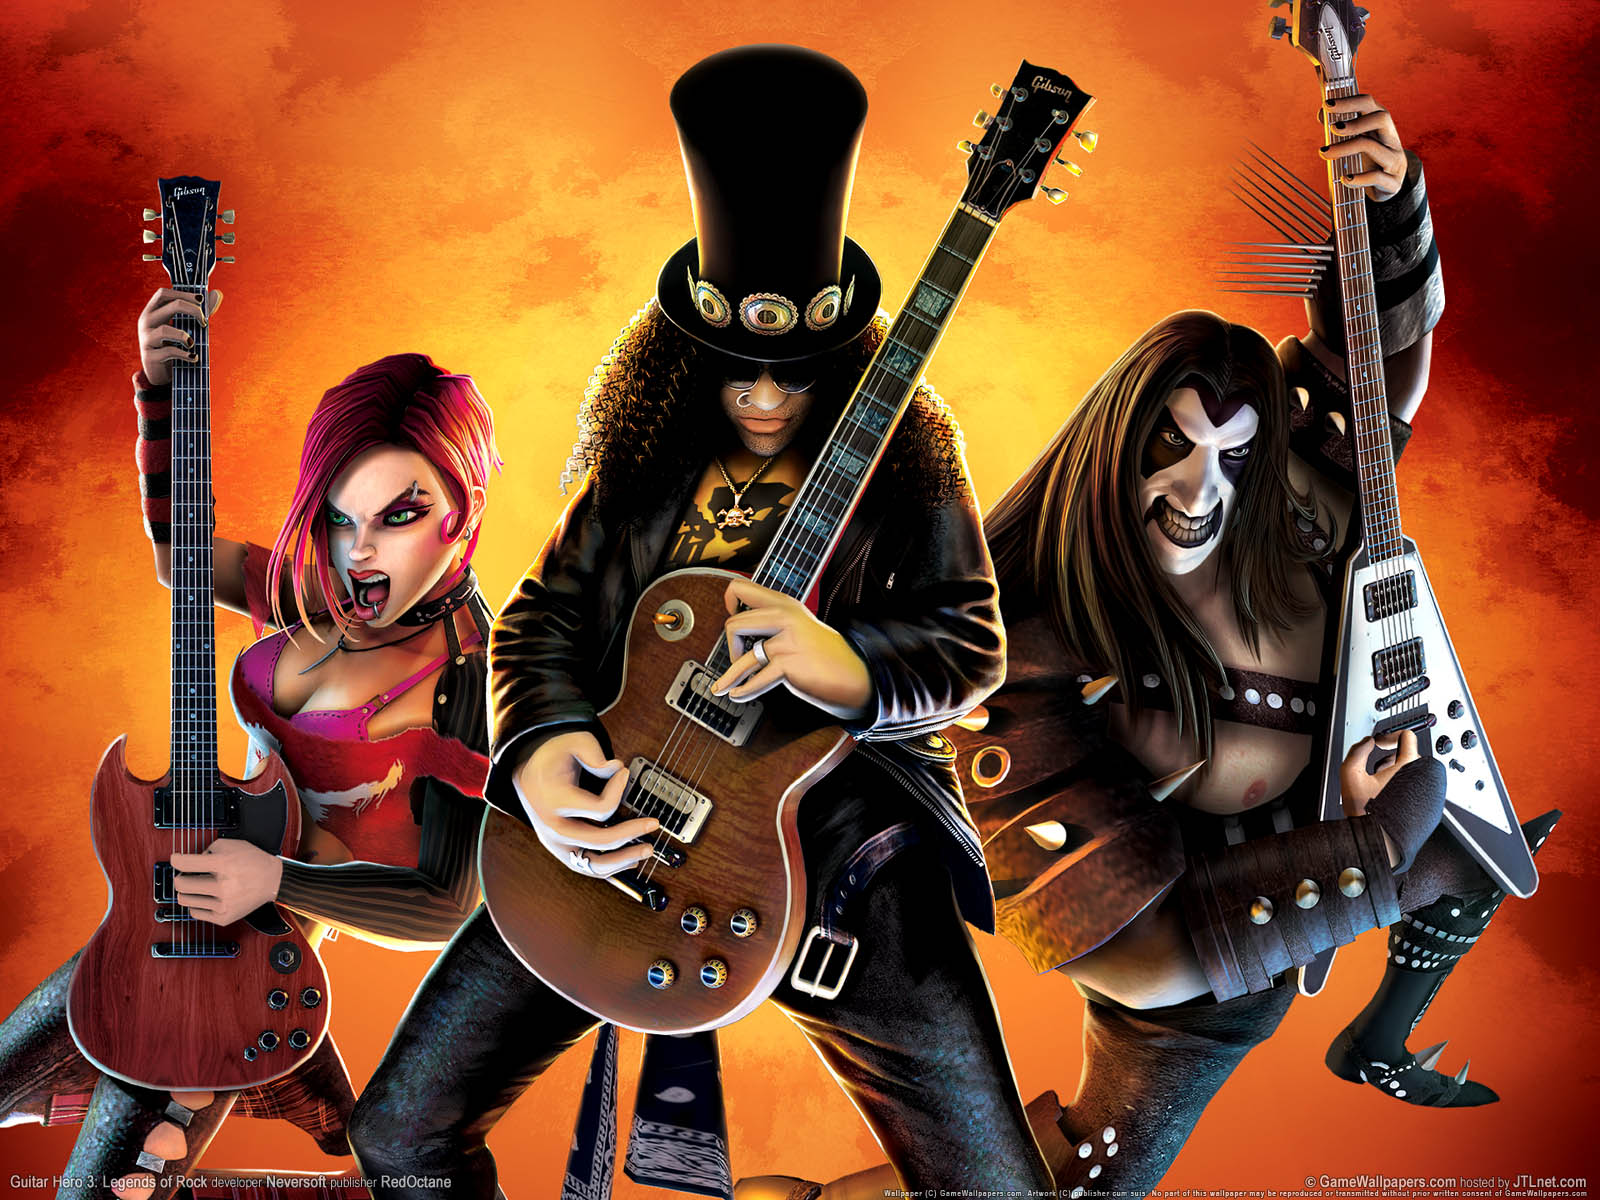 Guitar Hero 3: Legends of Rockνmmer=01 achtergrond  1600x1200